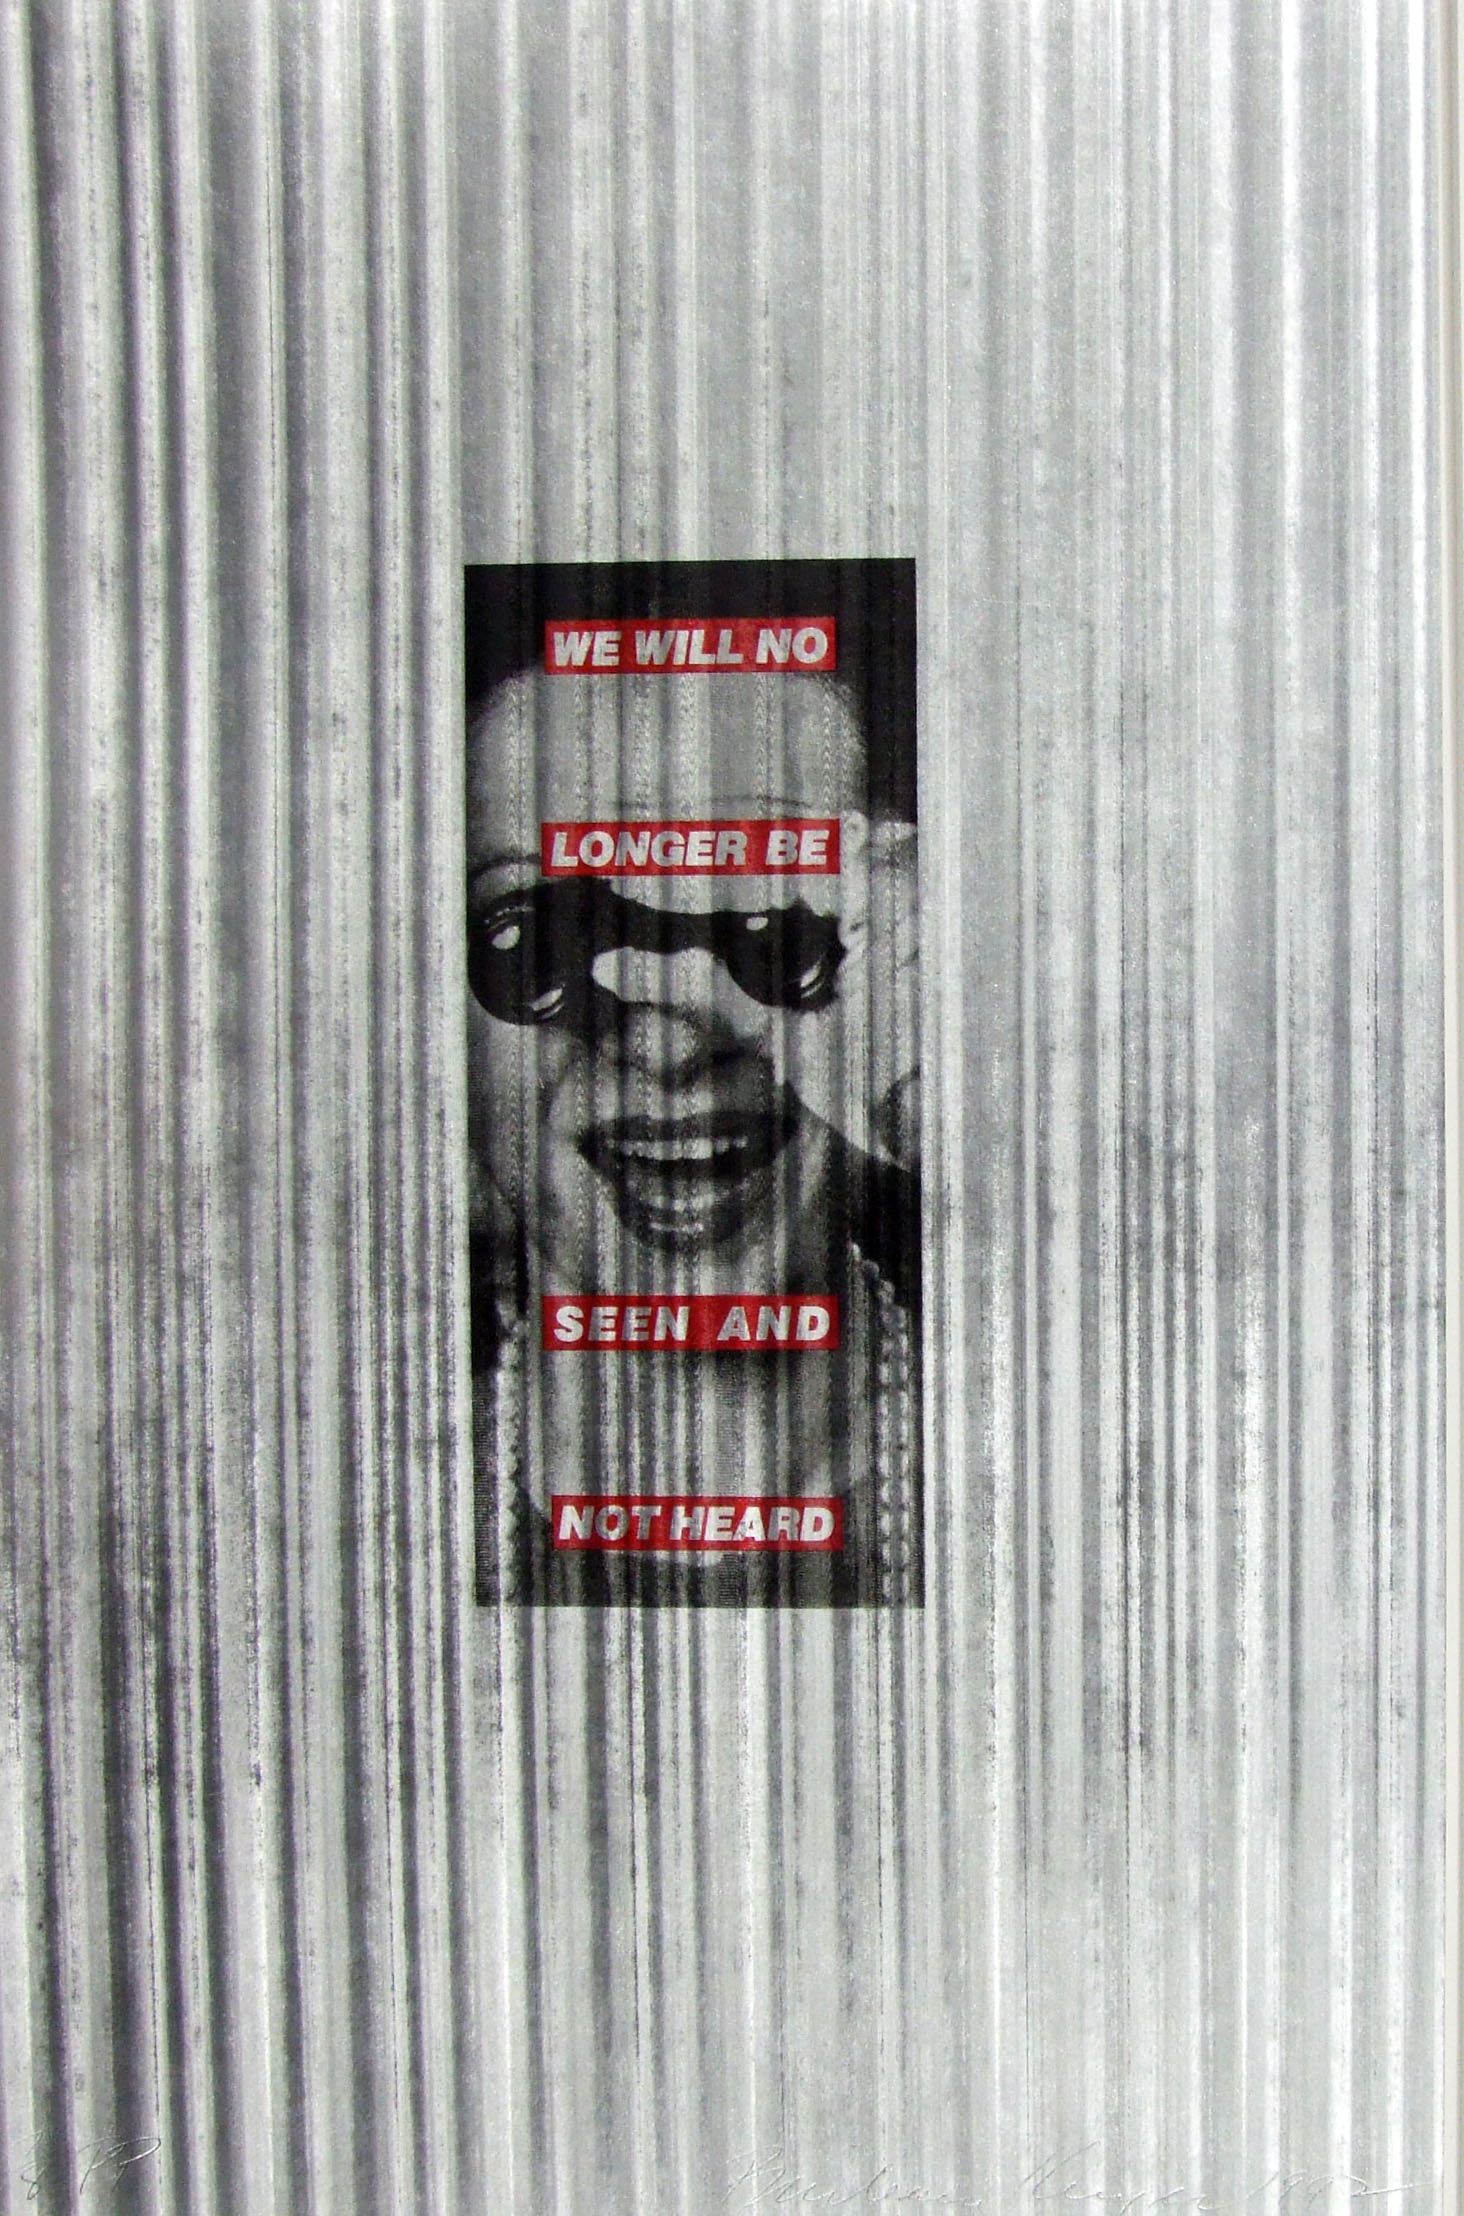 Barbara Kruger, <i>We Will No Longer Be Seen and Not Heard</i>, 1992. Eli and Edythe Broad Art Museum, Michigan State University, purchase, funded by the Office of the Vice President for Research and Graduate Studies.